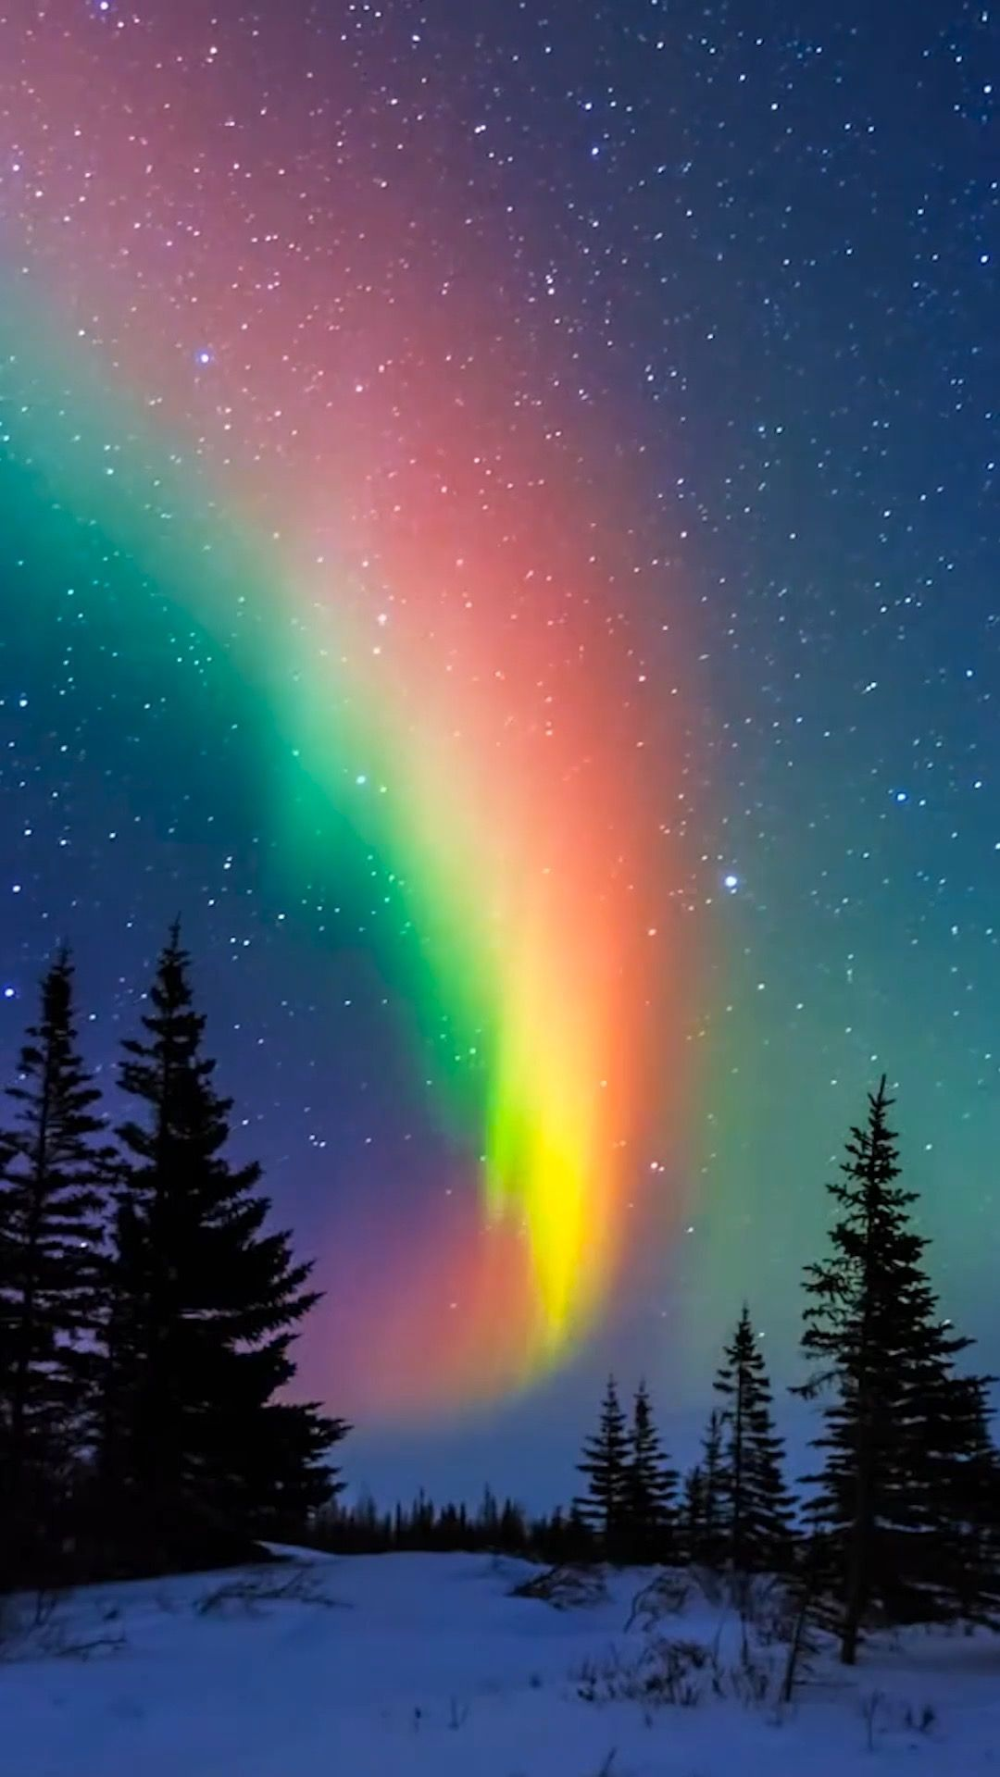 Past Beauty Of Men The Northern Lights Rainbow Photography Nature Rainbow Photography Beautiful Nature Wallpaper